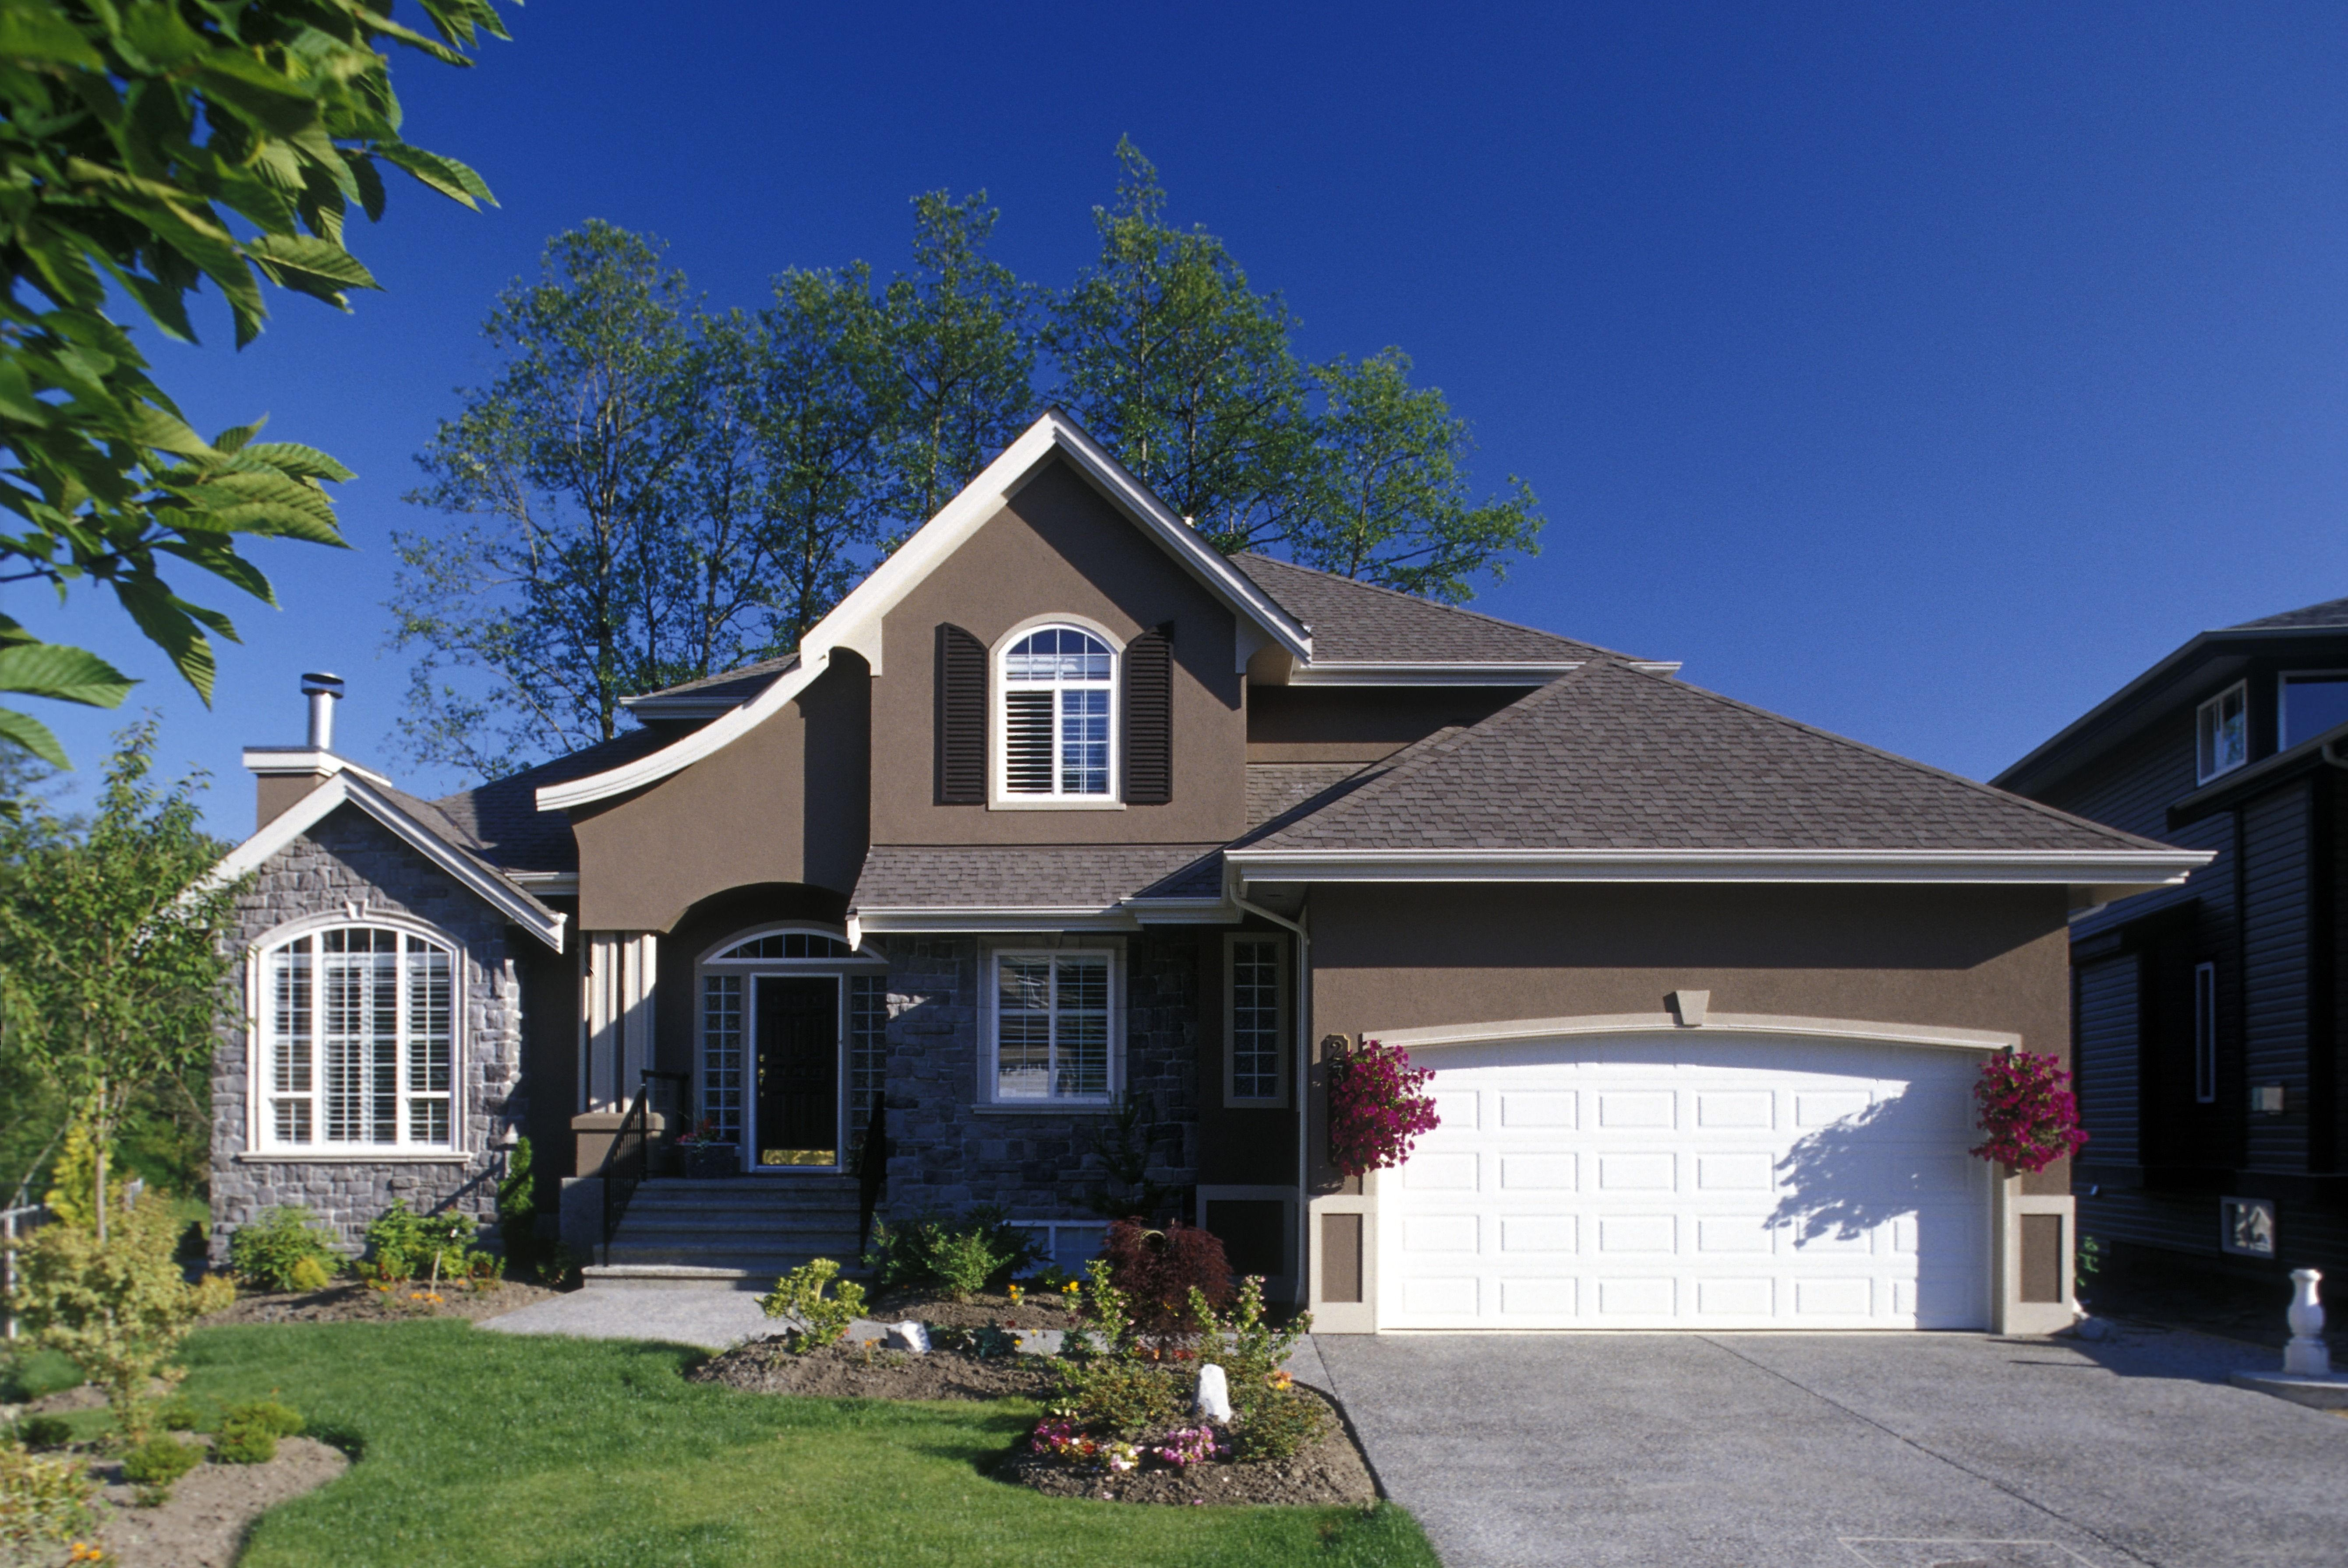 Exterior Painting Cost Cost To Paint House Exterior House Paint Exterior Front View Of House House Exterior